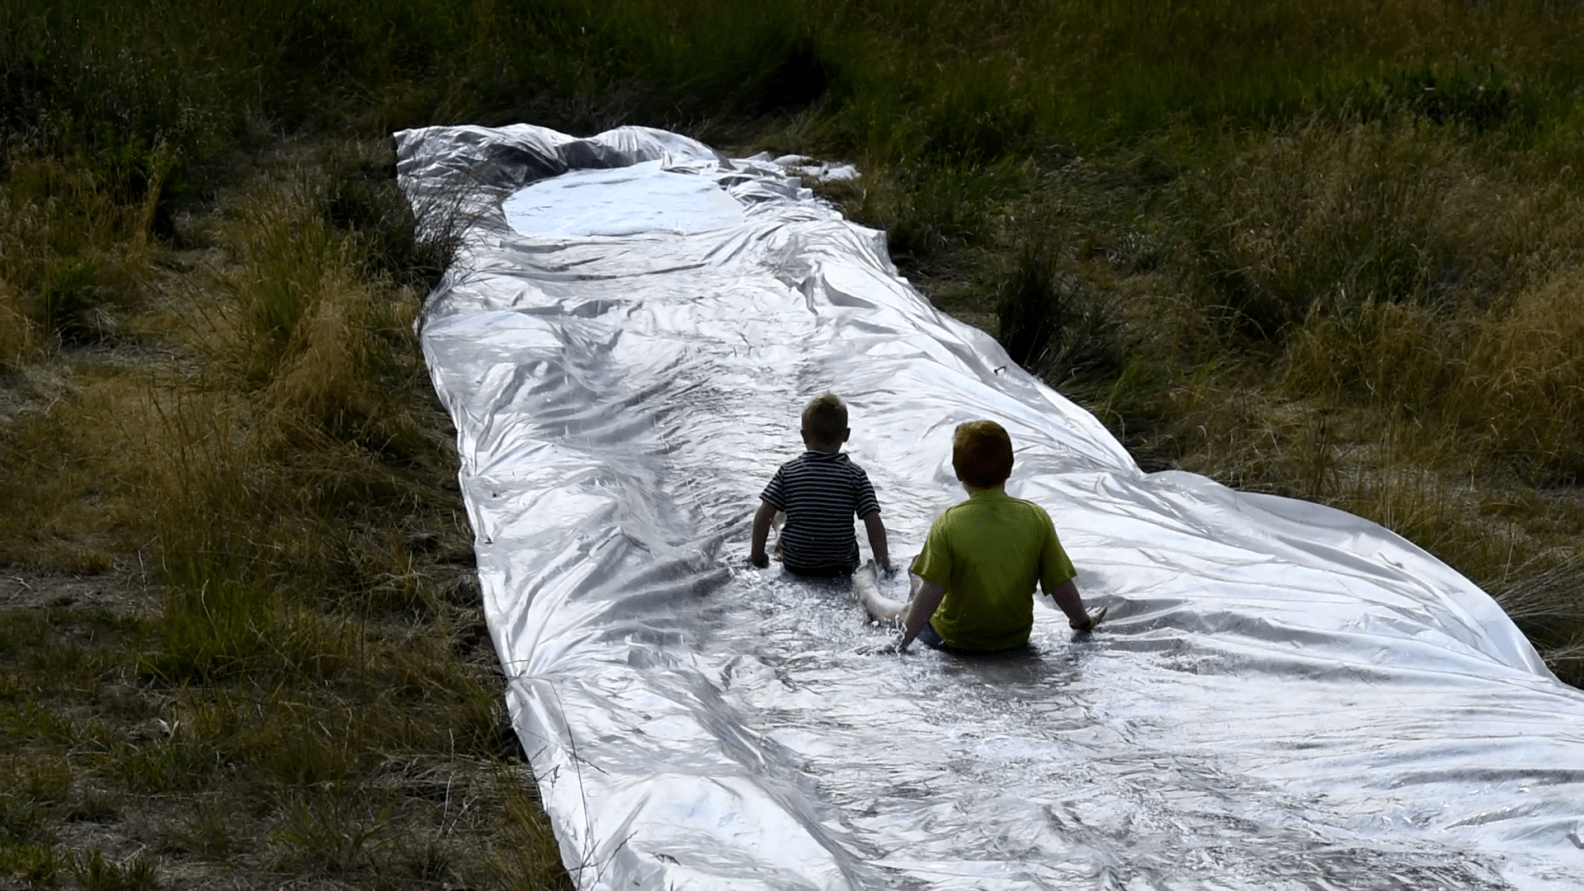 Diy Slip And Slide Keep Kids Entertained All Summer My Happy Simple Living Giant Slip And Slide Slip And Slide Kids Entertainment